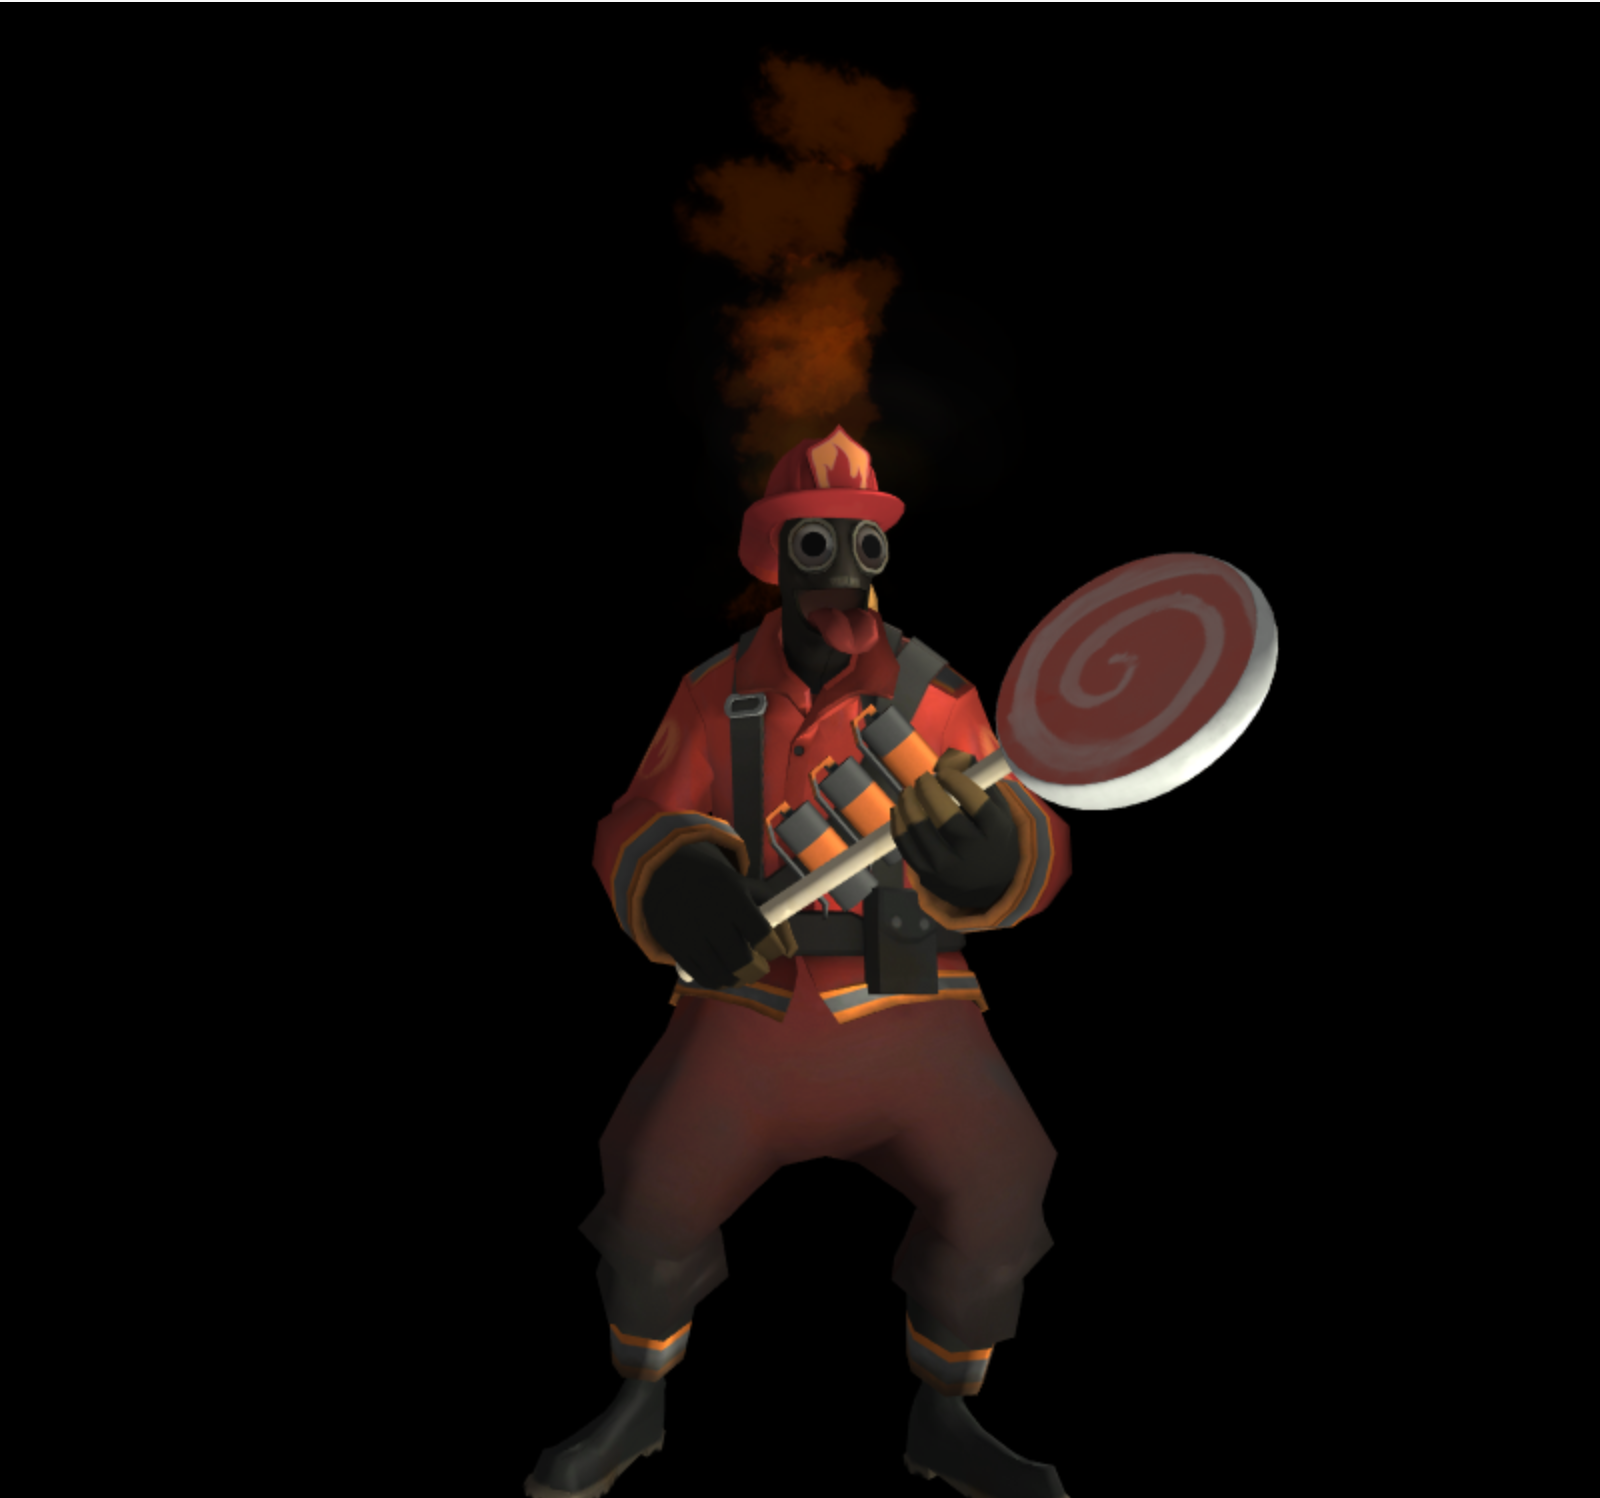 How to get free tf2 item the dread hiding hood - I M Not Going To Get Very In Depth Into These But These Were Spells You Could Put On Your Hats That Were Awarded To You By Getting These Gifts During